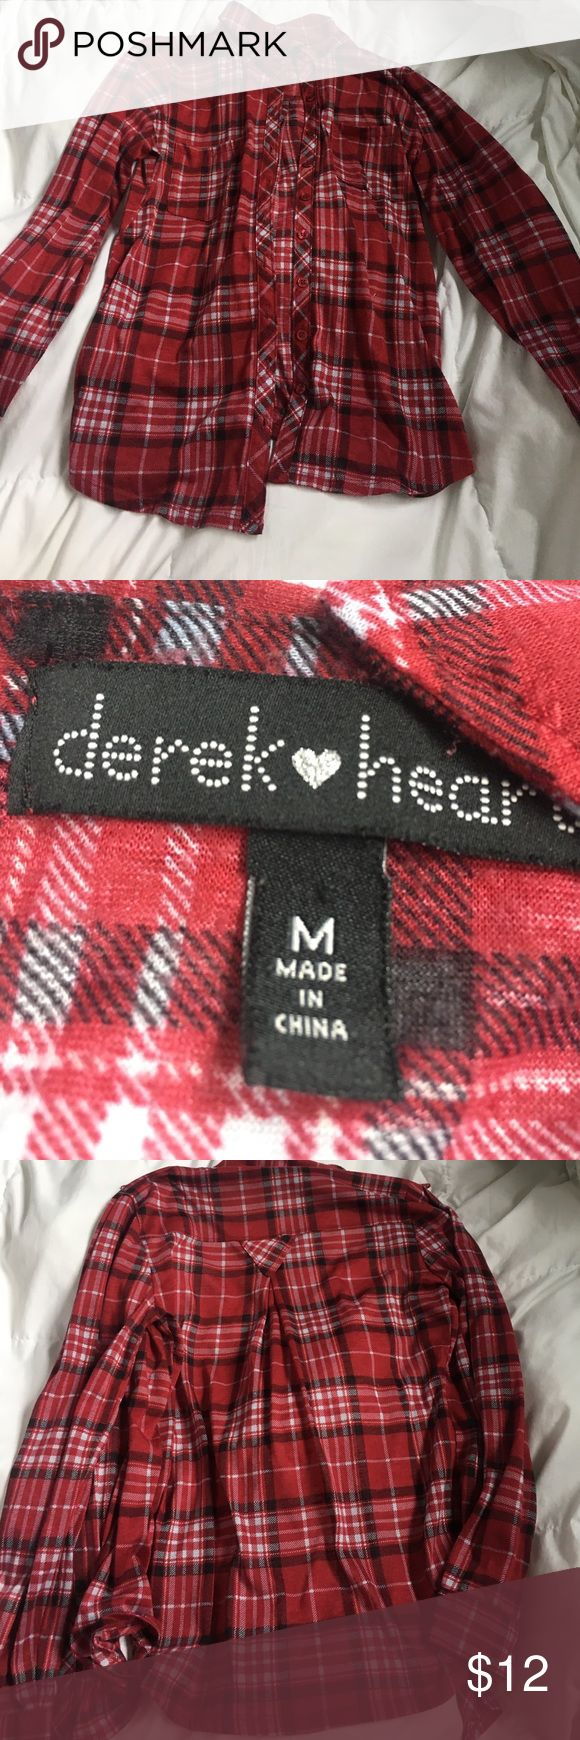 Plaid Design Shirt Thin comfy plaid design shirt! Not flannel material, also not Brandy just tagging for exposure. One pocket on each side. Brandy Melville Tops Button Down Shirts